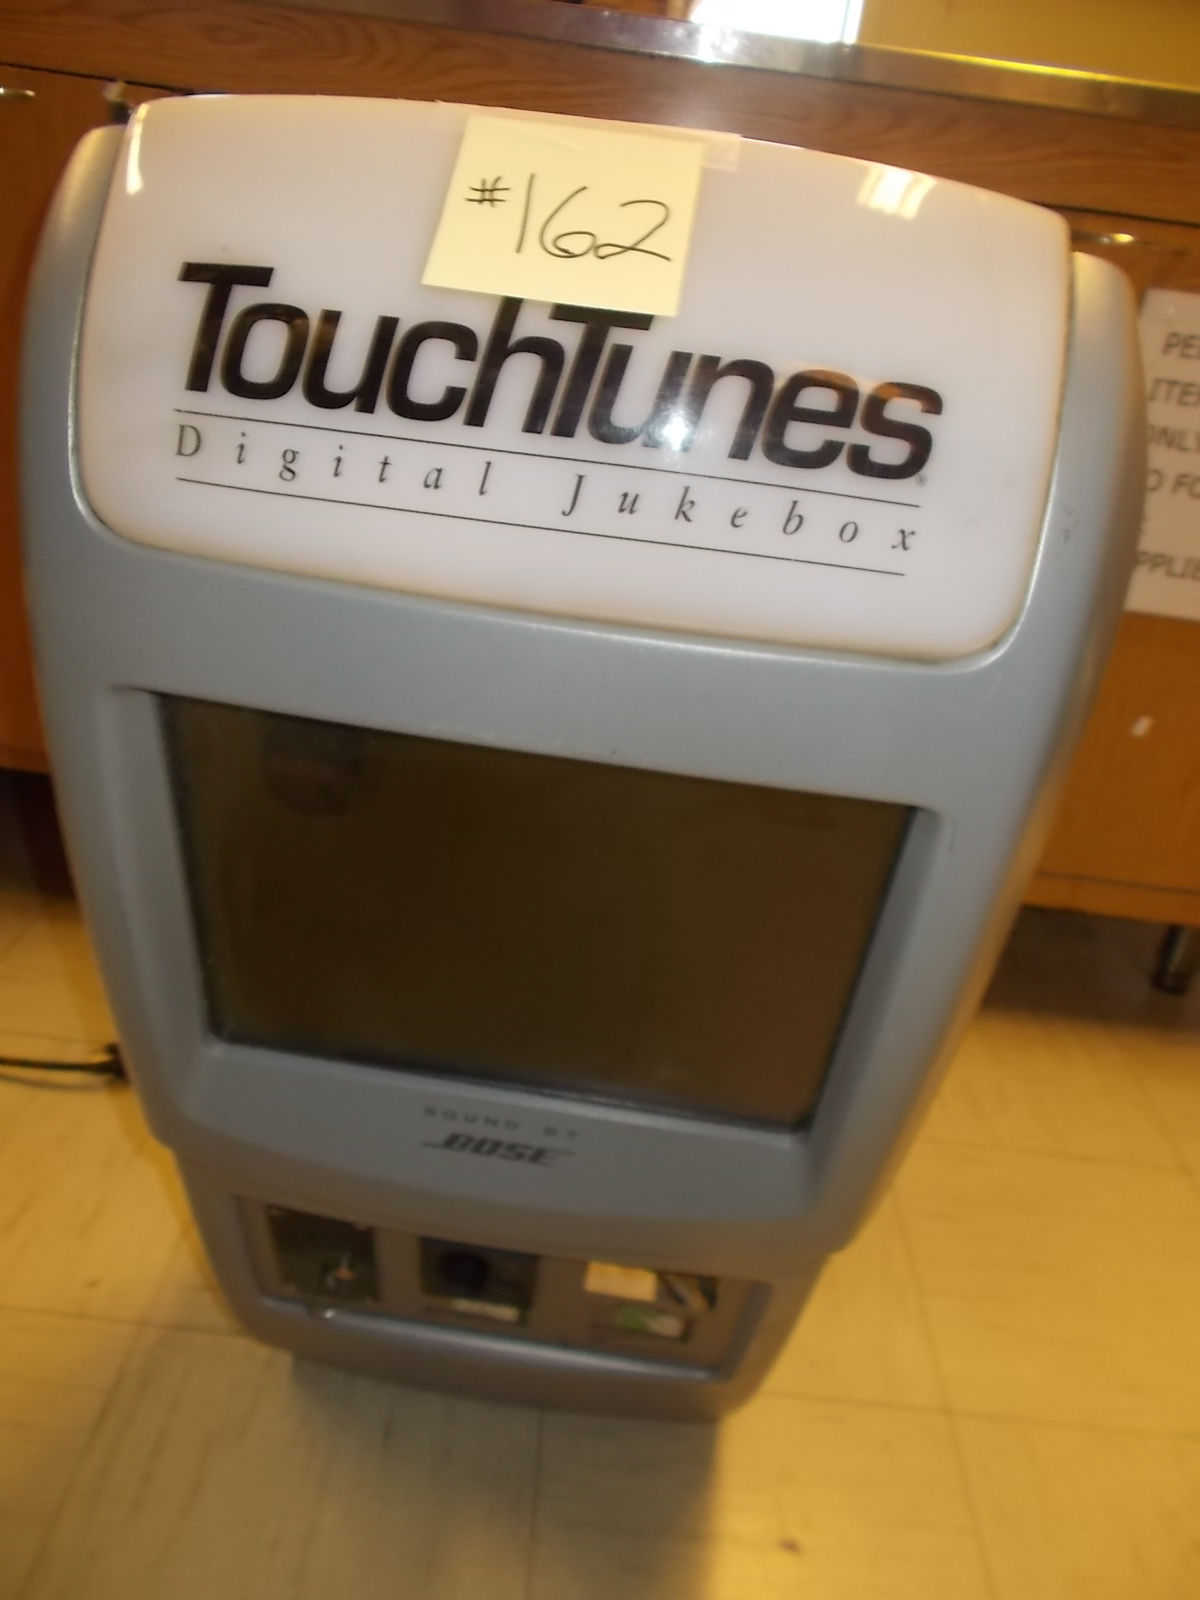 TOUCHTUNES Maestro Jukebox - with monitor - incomplete - for